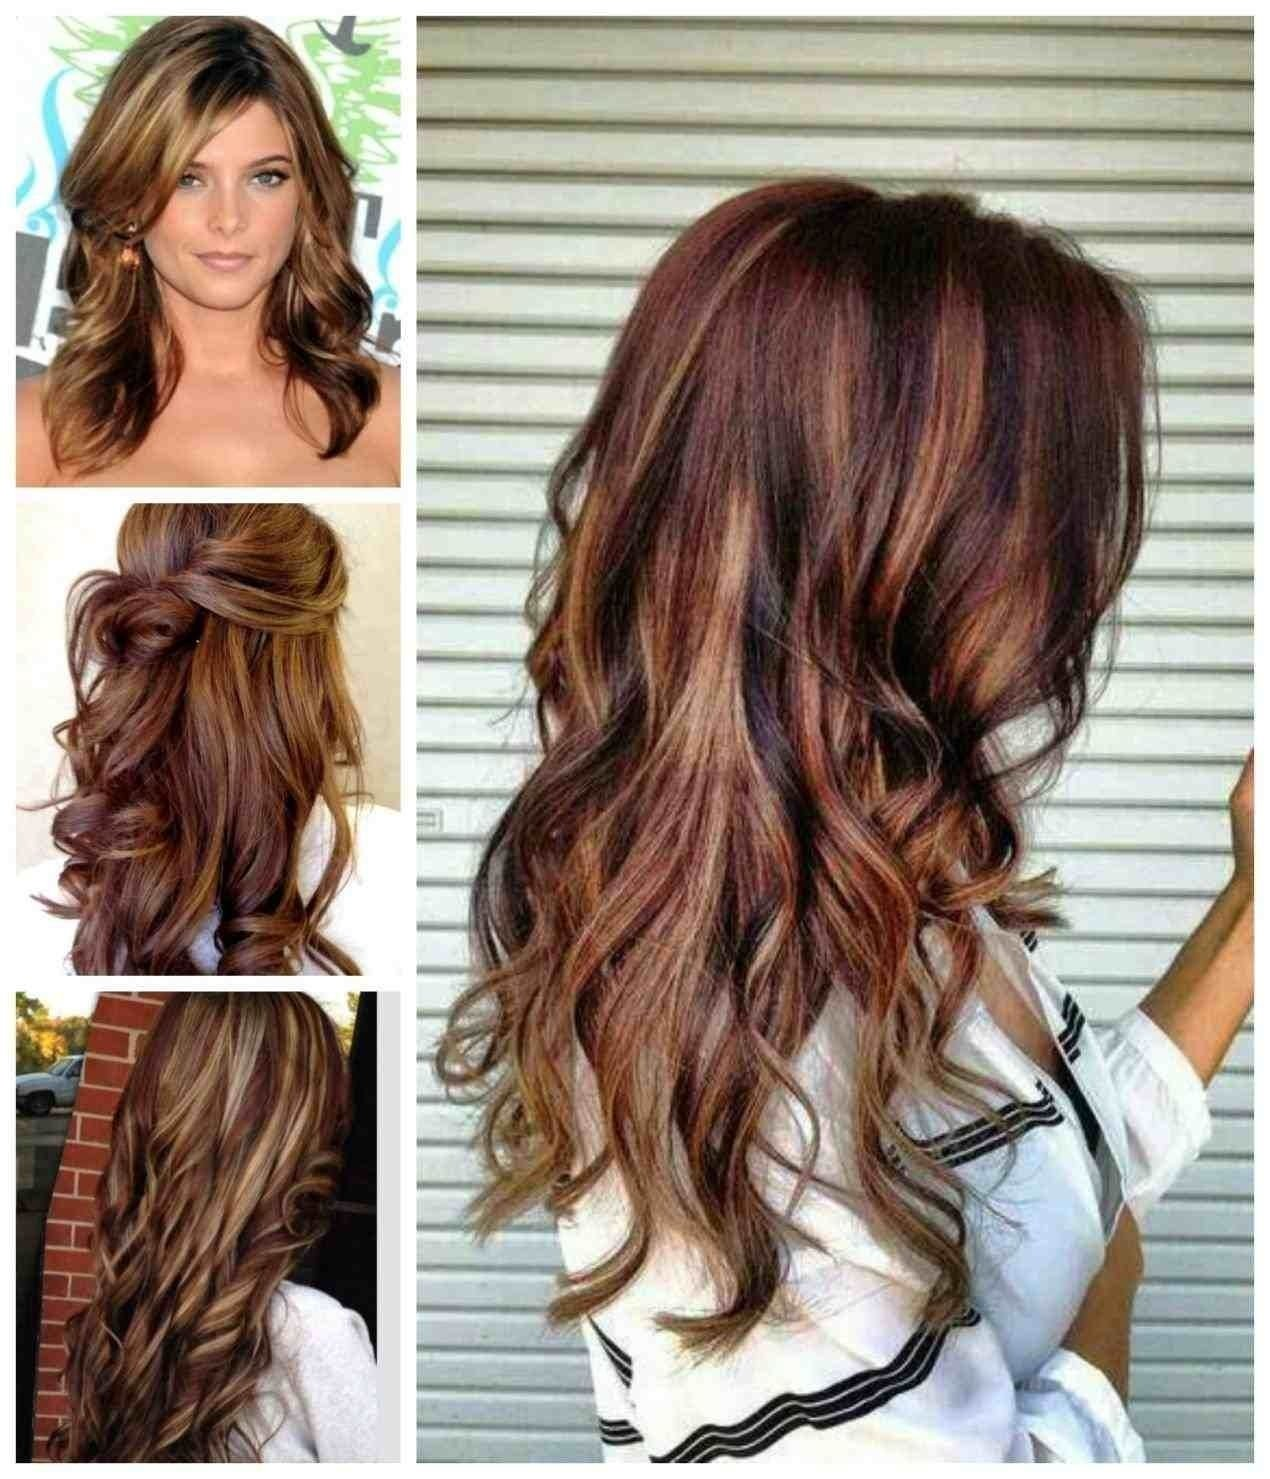 10 Most Recommended Hair Color Ideas For 2013 new post light brown hair color ideas 2013 trending now balayagehair 2020